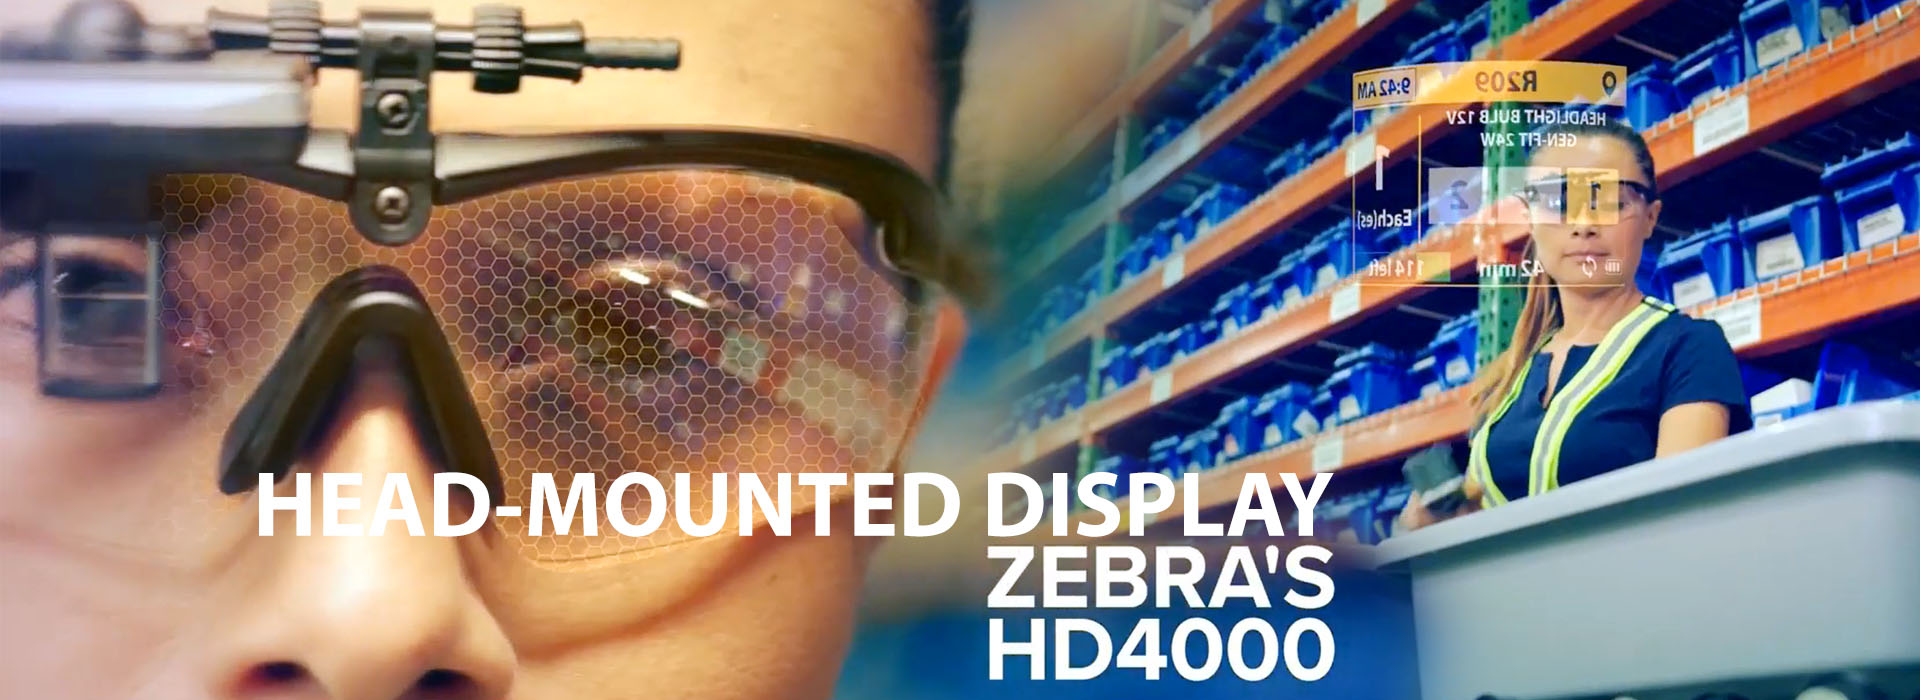 HEAD-MOUNTED DISPLAY Zebra HD4000